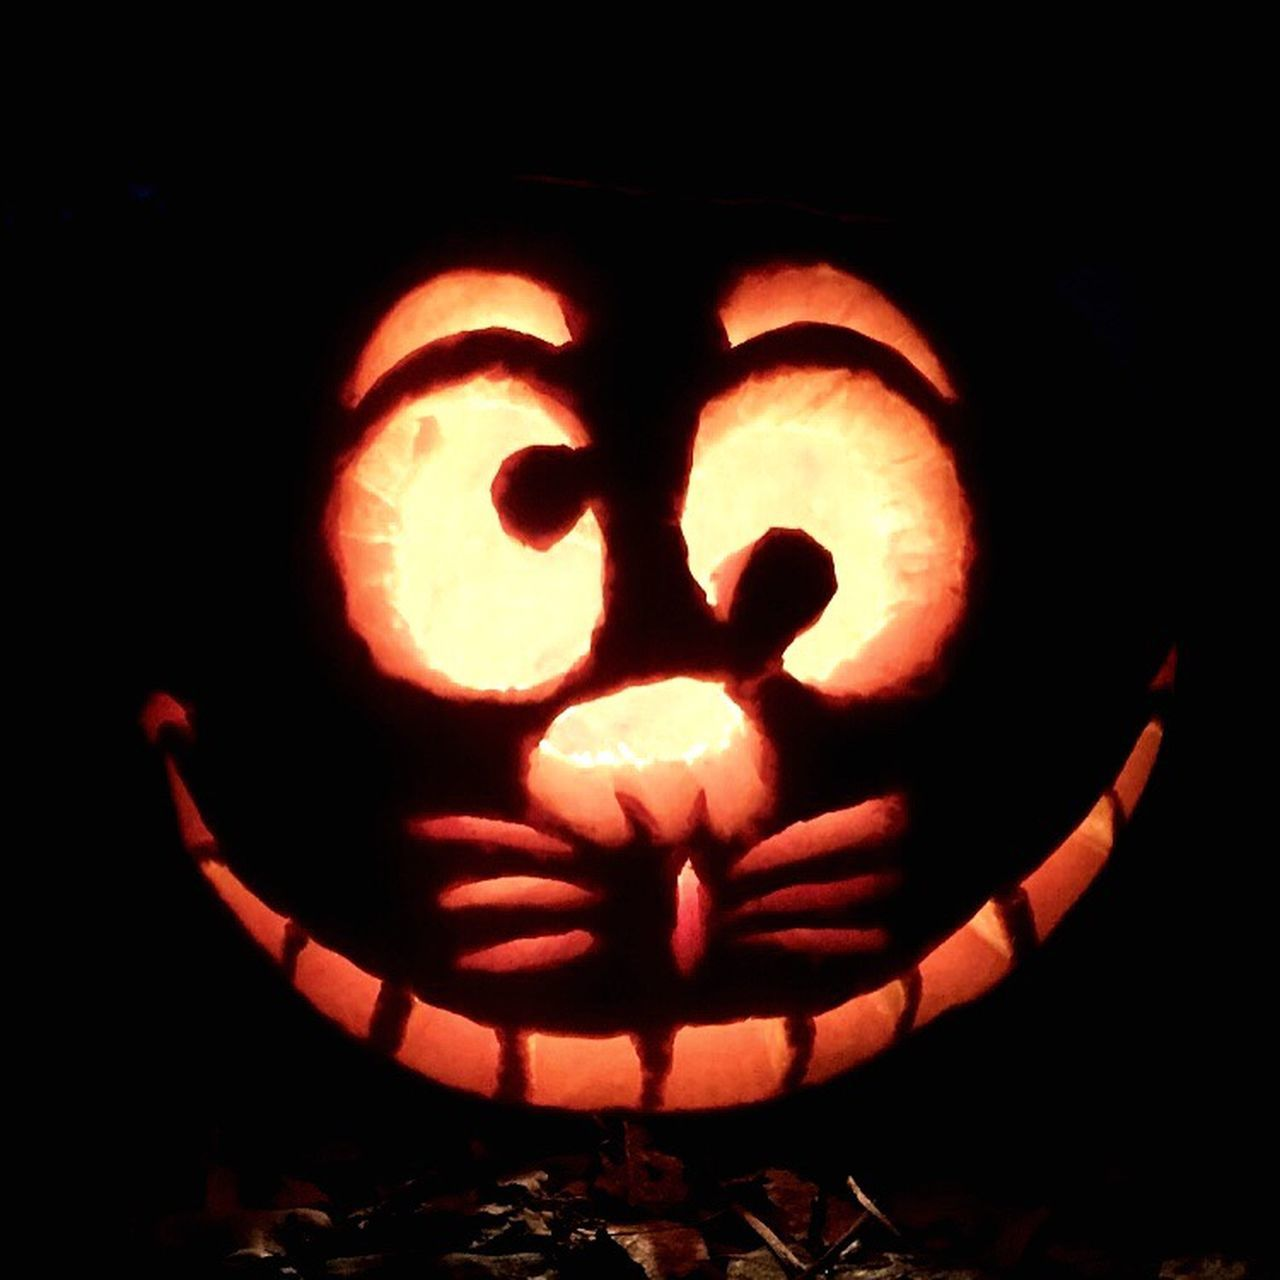 🎃 Cheshire Cat 🎃 Halloween Pumpkin Night Holiday - Event Jack O' Lantern Illuminated Smiling Outdoors Black Background Celebration IPhoneography Friends Aliceinwonderland Cat Cheshire Cat Shadows Light